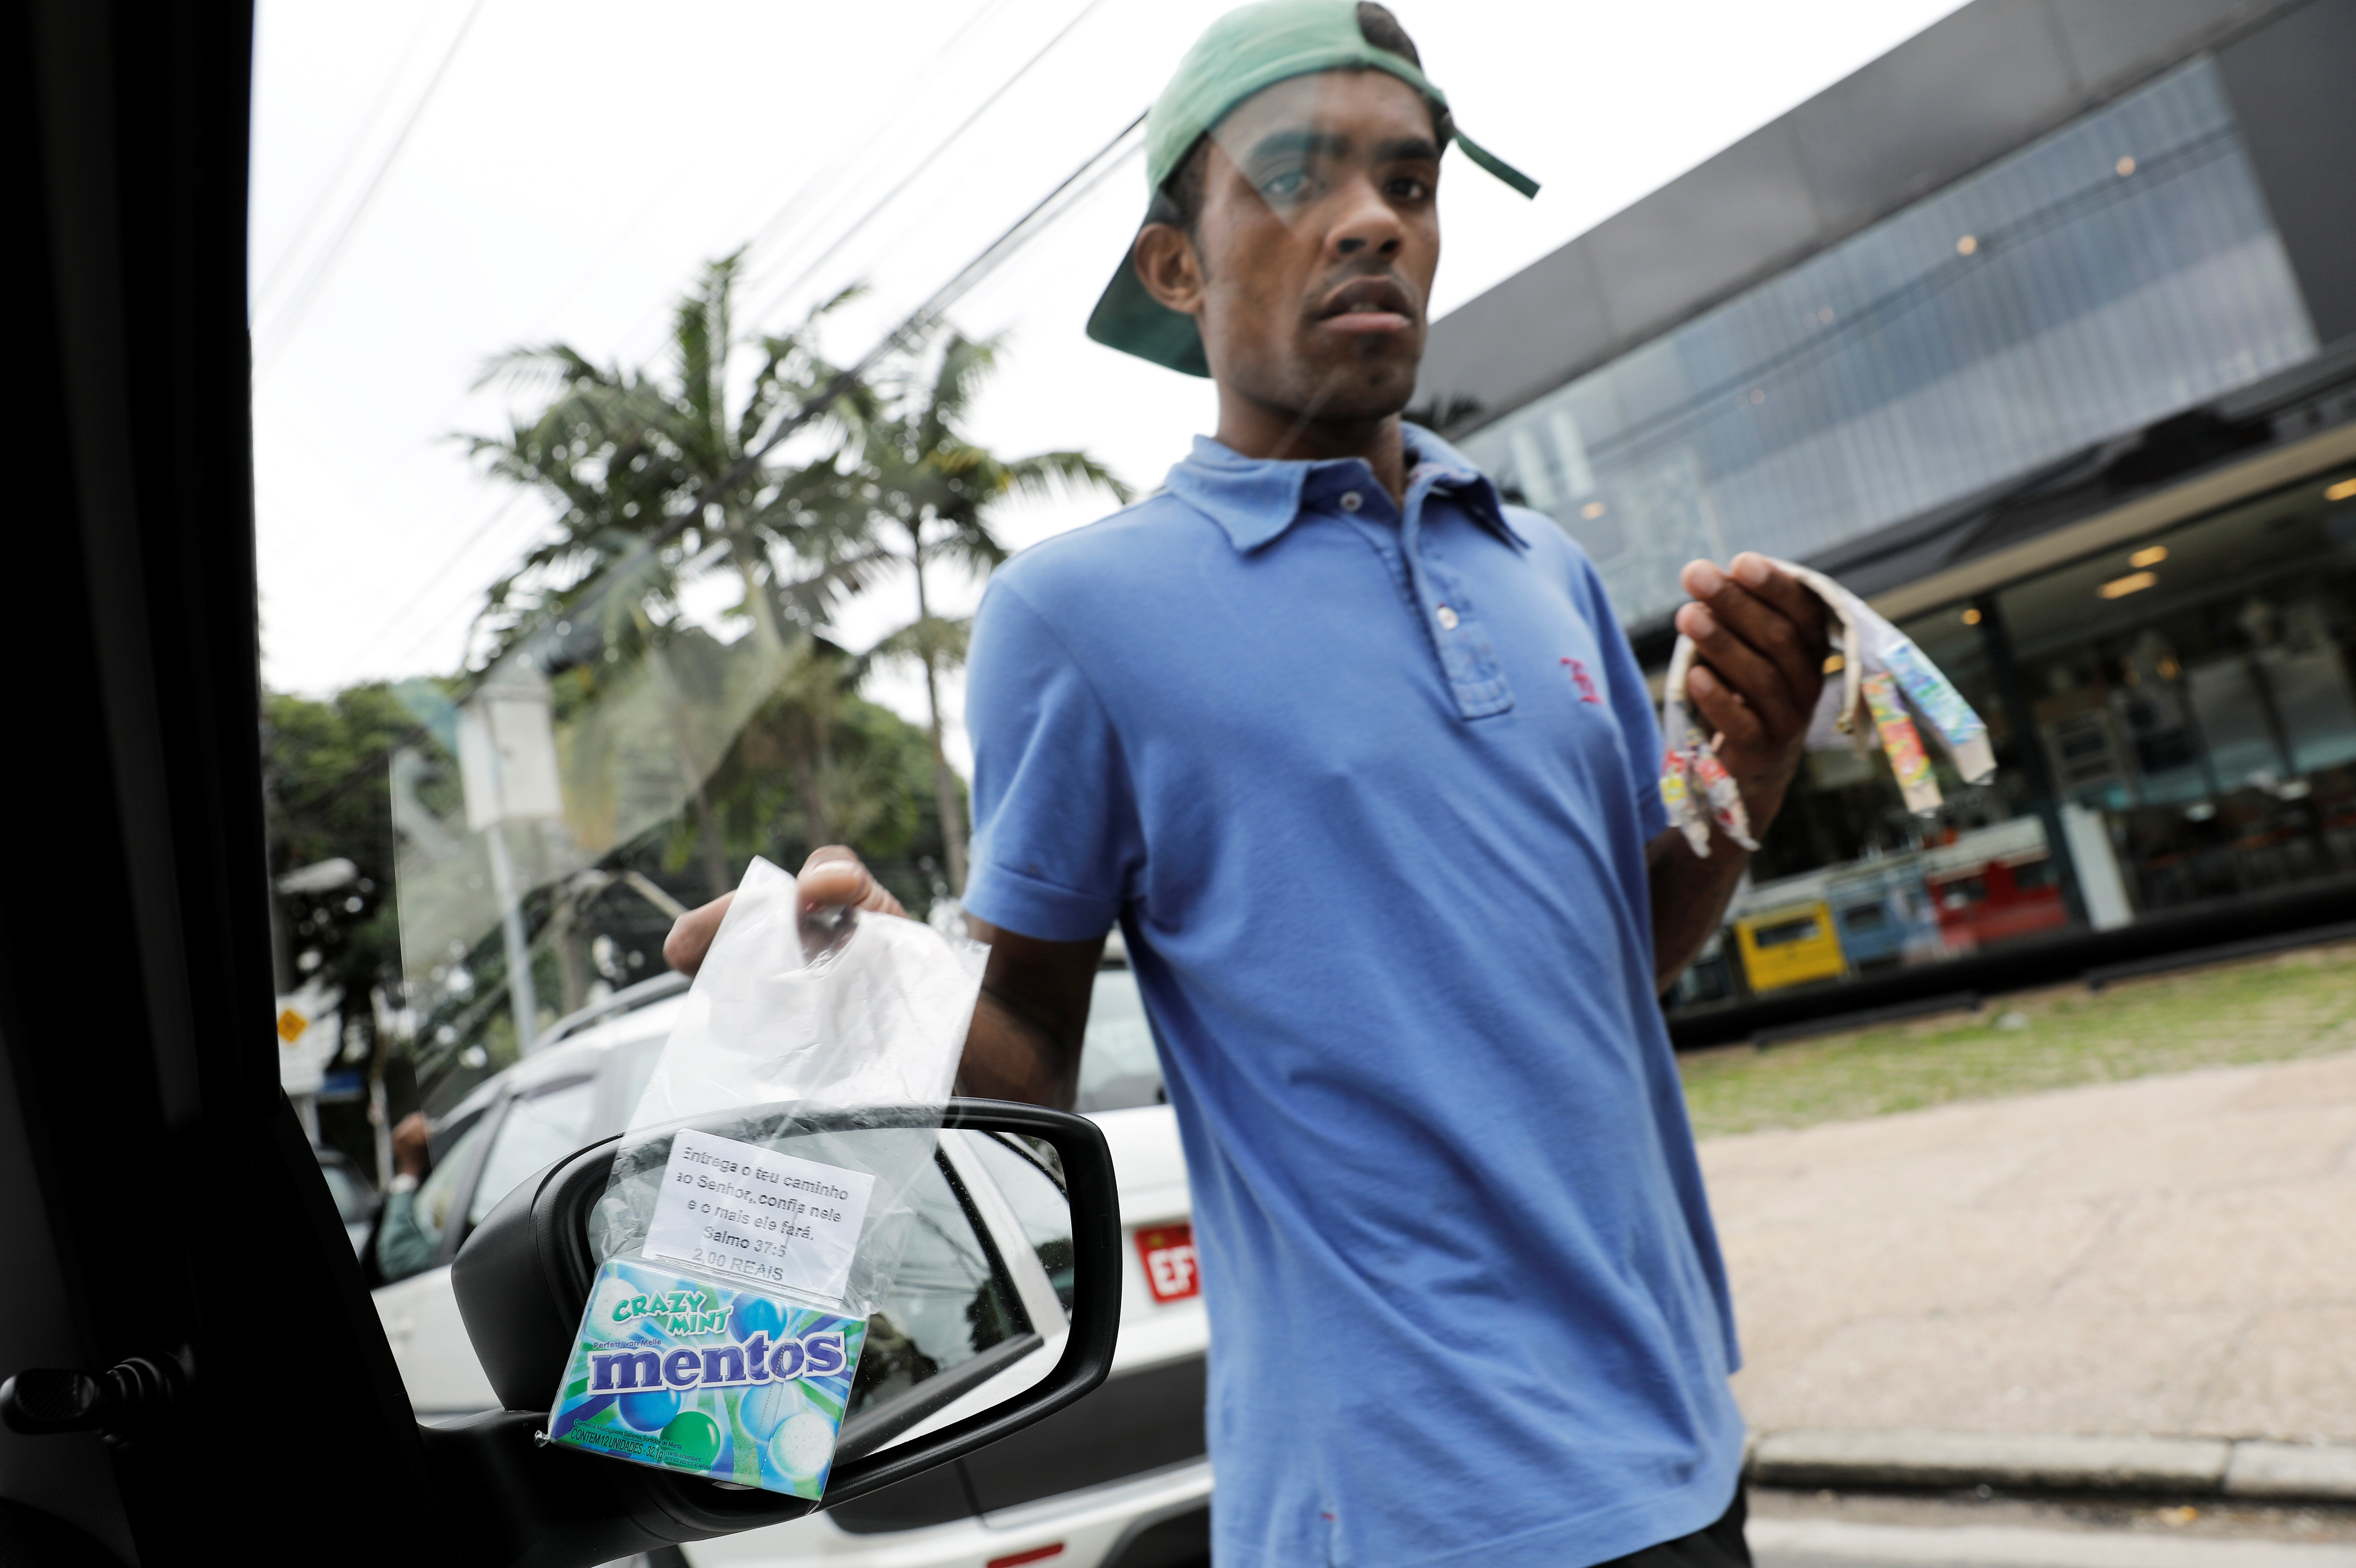 A man sells sweets car to car in Sâo Paulo, Brazil.